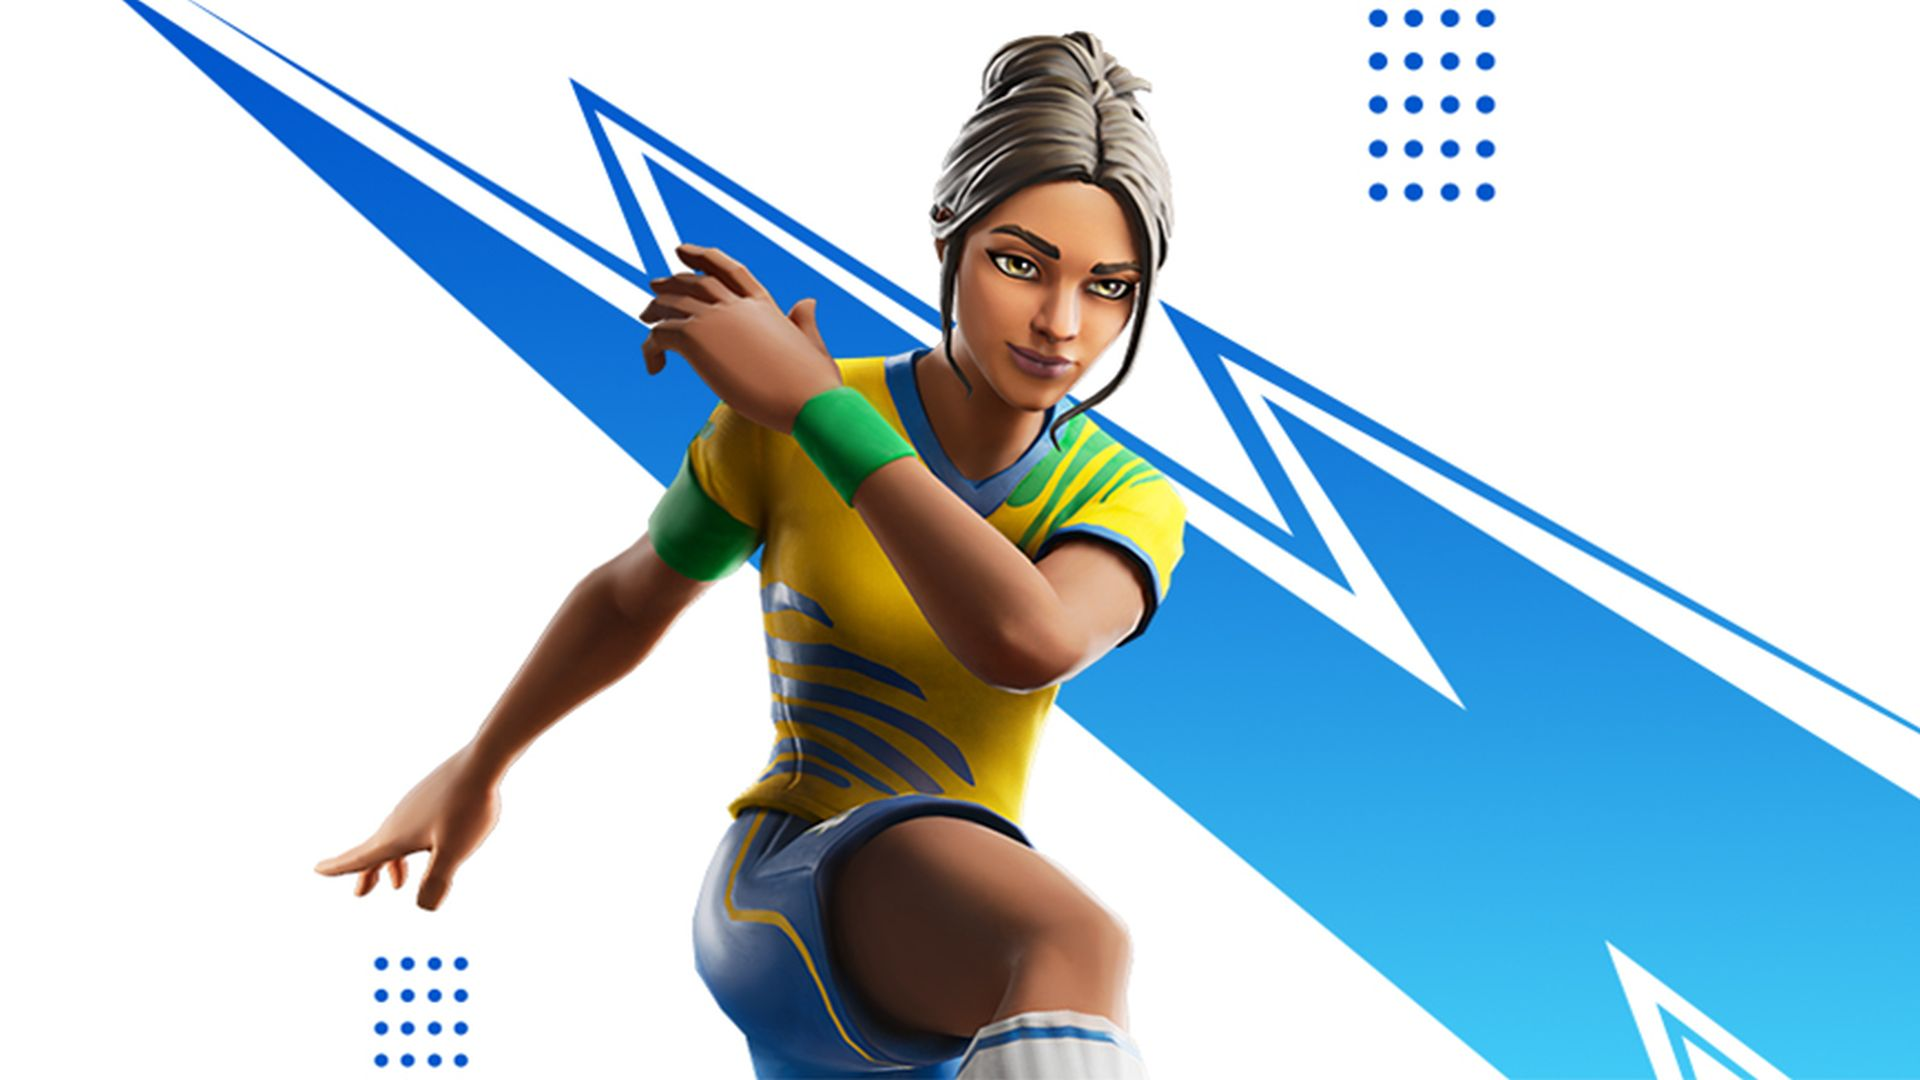 Football comes to Fortnite this week